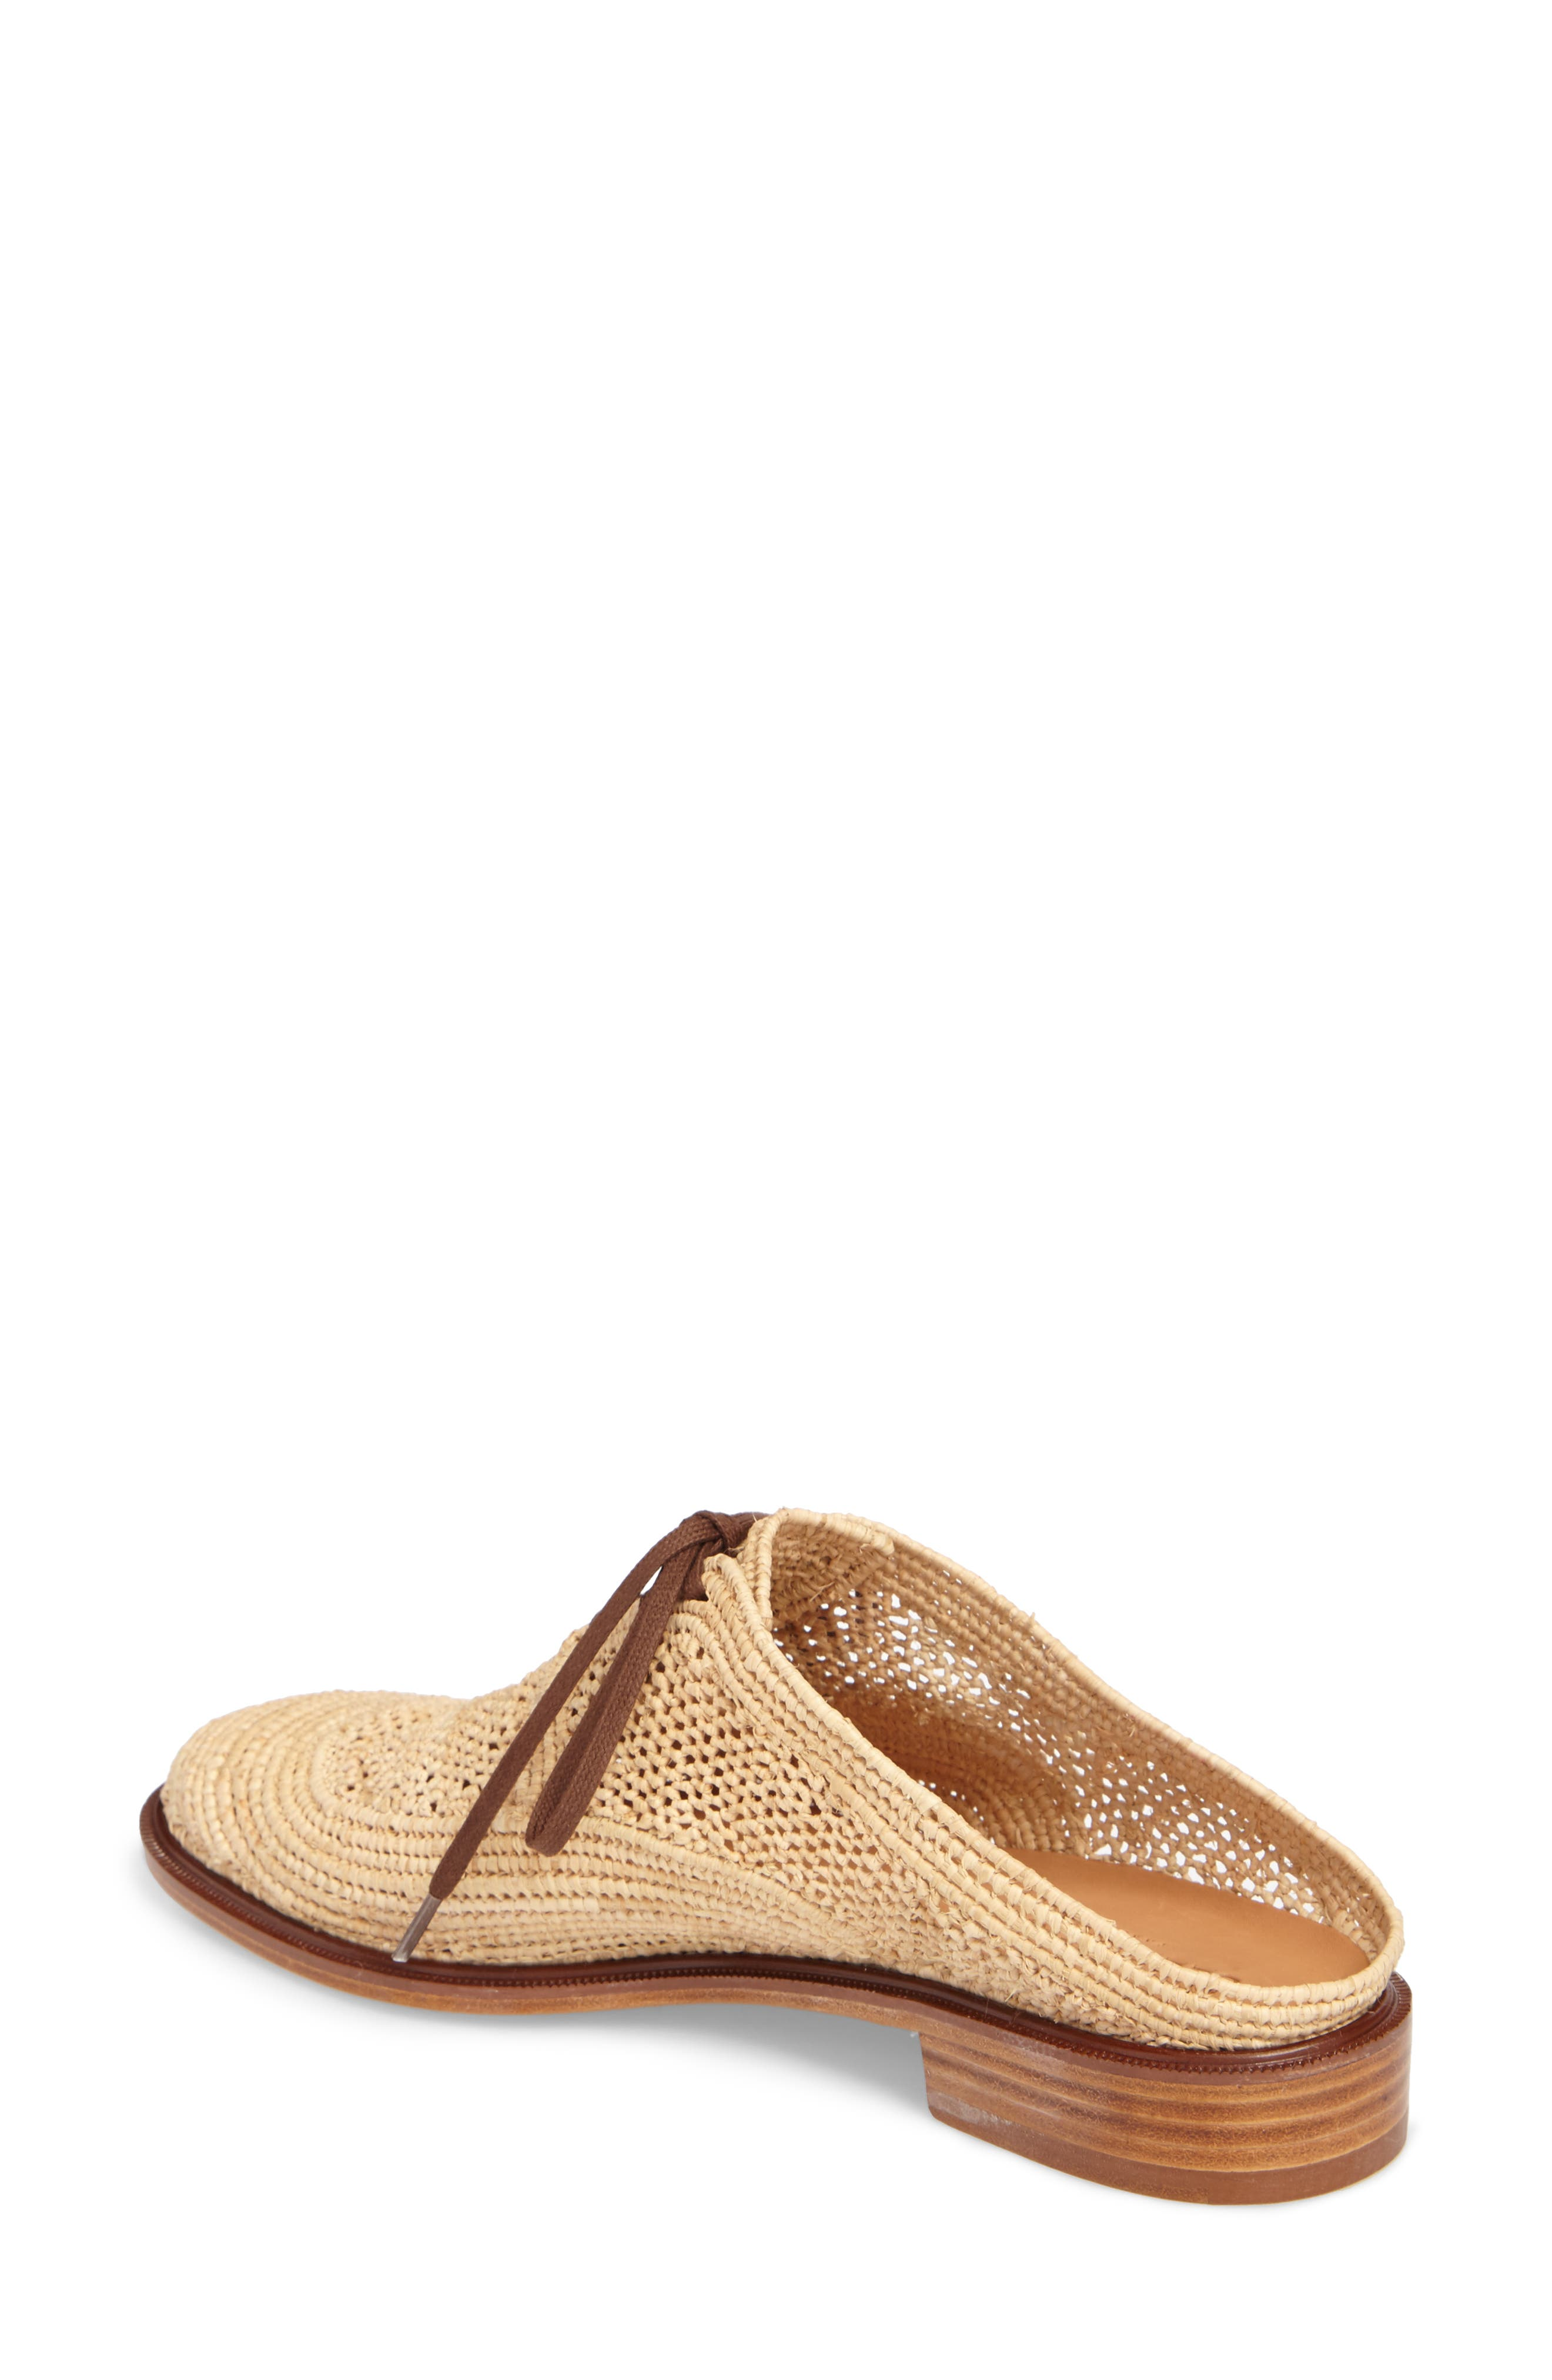 Alternate Image 2  - Robert Clergerie Jaly Woven Loafer Mule (Women)